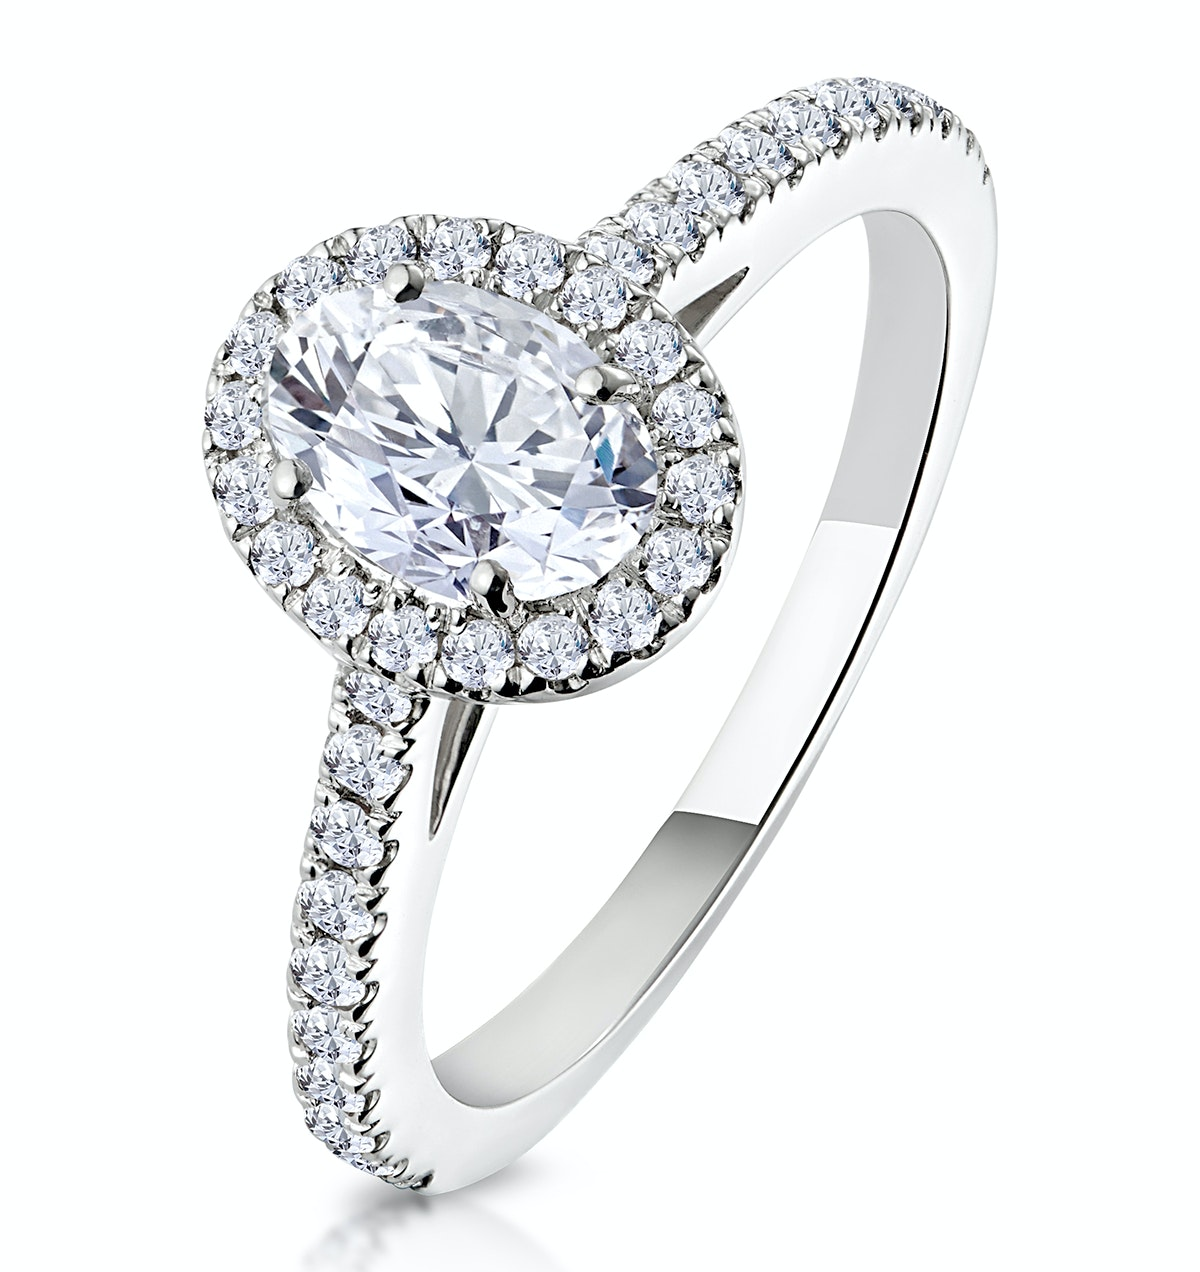 Georgina GIA Oval Diamond Halo Engagement Ring Platinum 1.30ct G/SI2